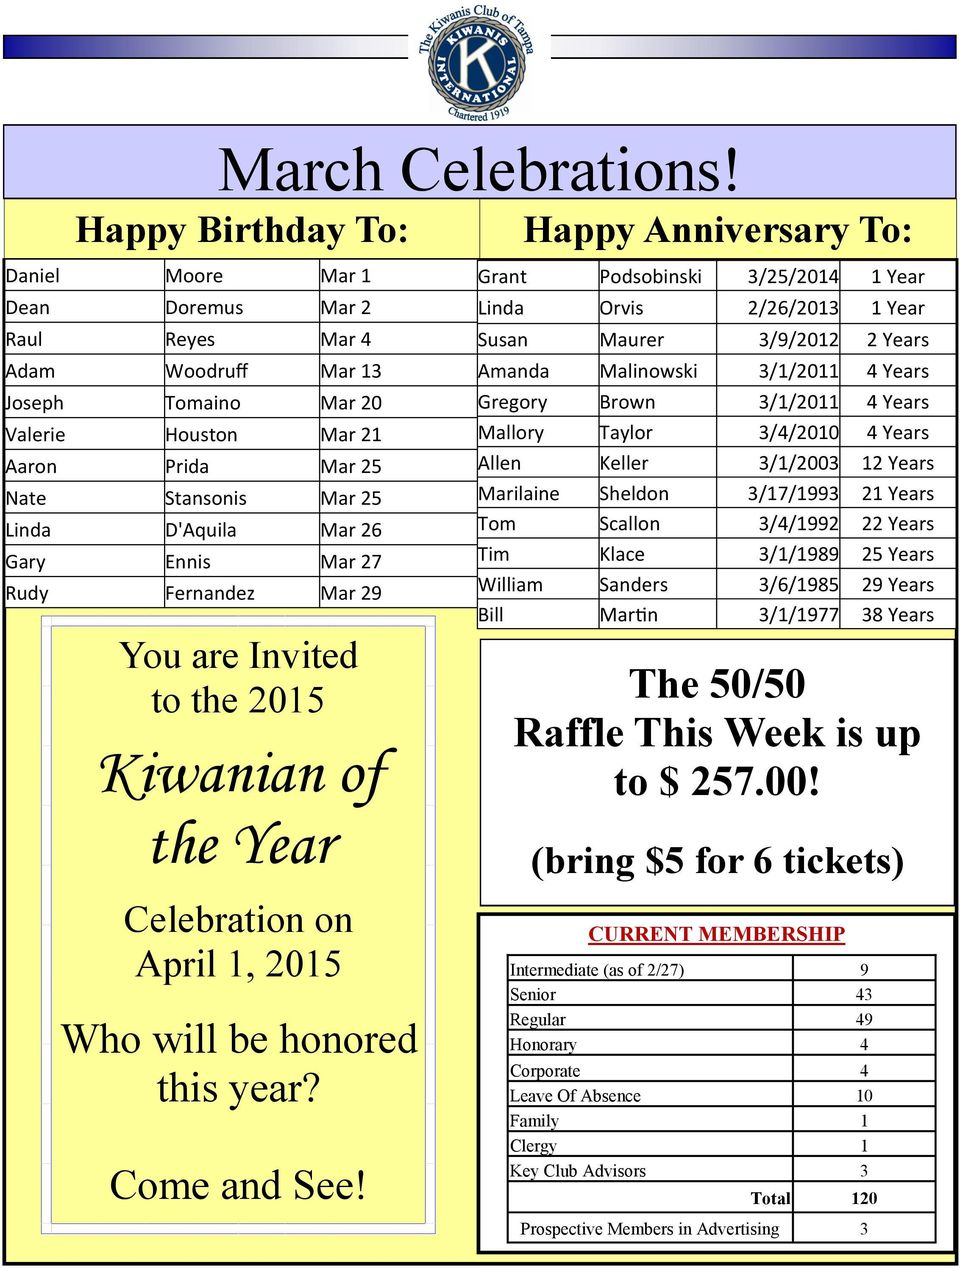 25 Linda D'Aquila Mar 26 Gary Ennis Mar 27 Rudy Fernandez Mar 29 You are Invited to the 2015 Kiwanian of the Year Celebration on April 1, 2015 Who will be honored this year? Come and See!